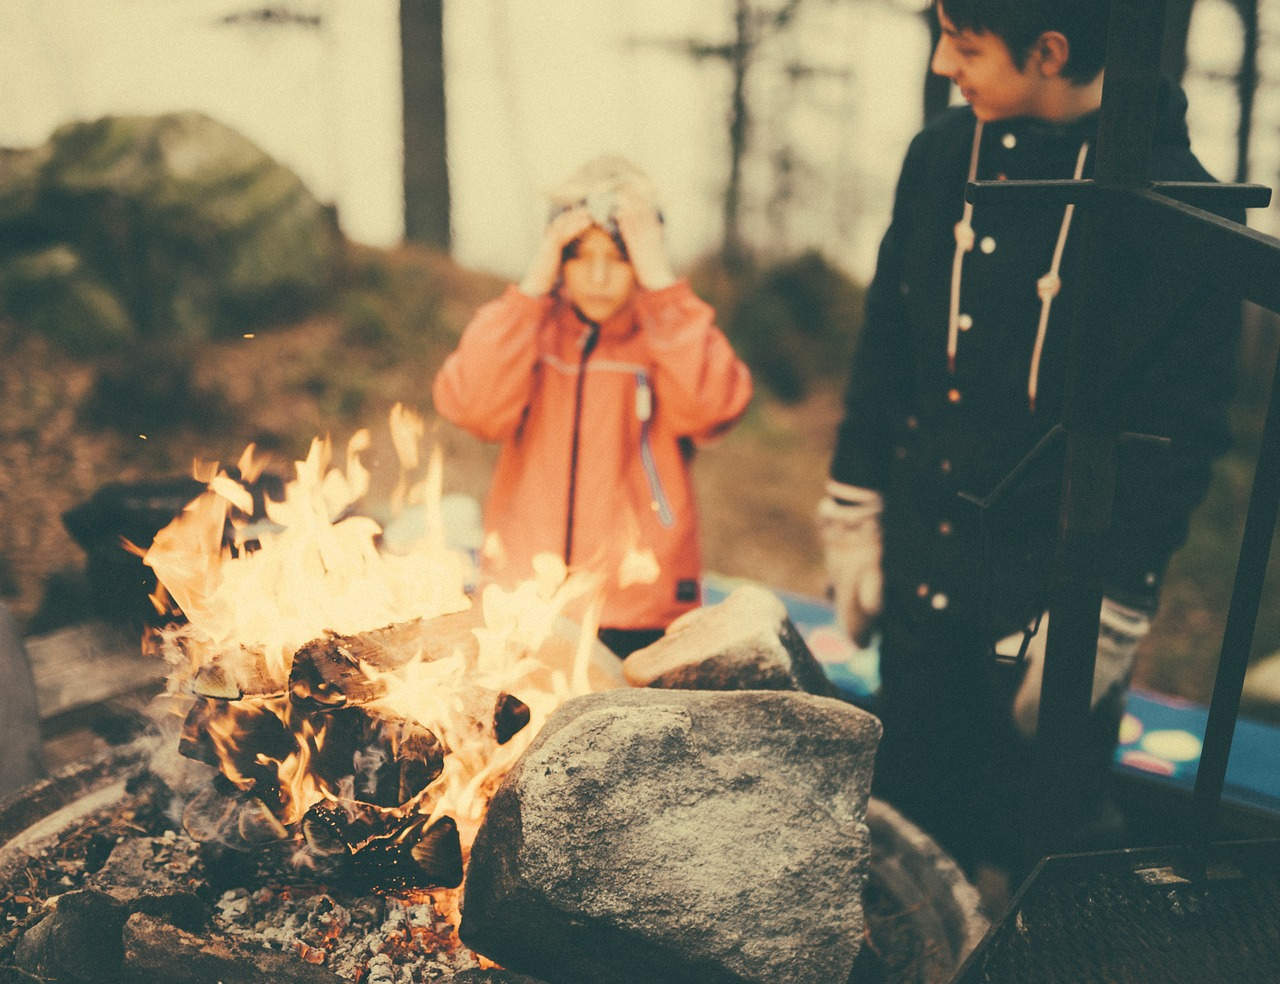 Always teach kids about fire safety before backyard camping